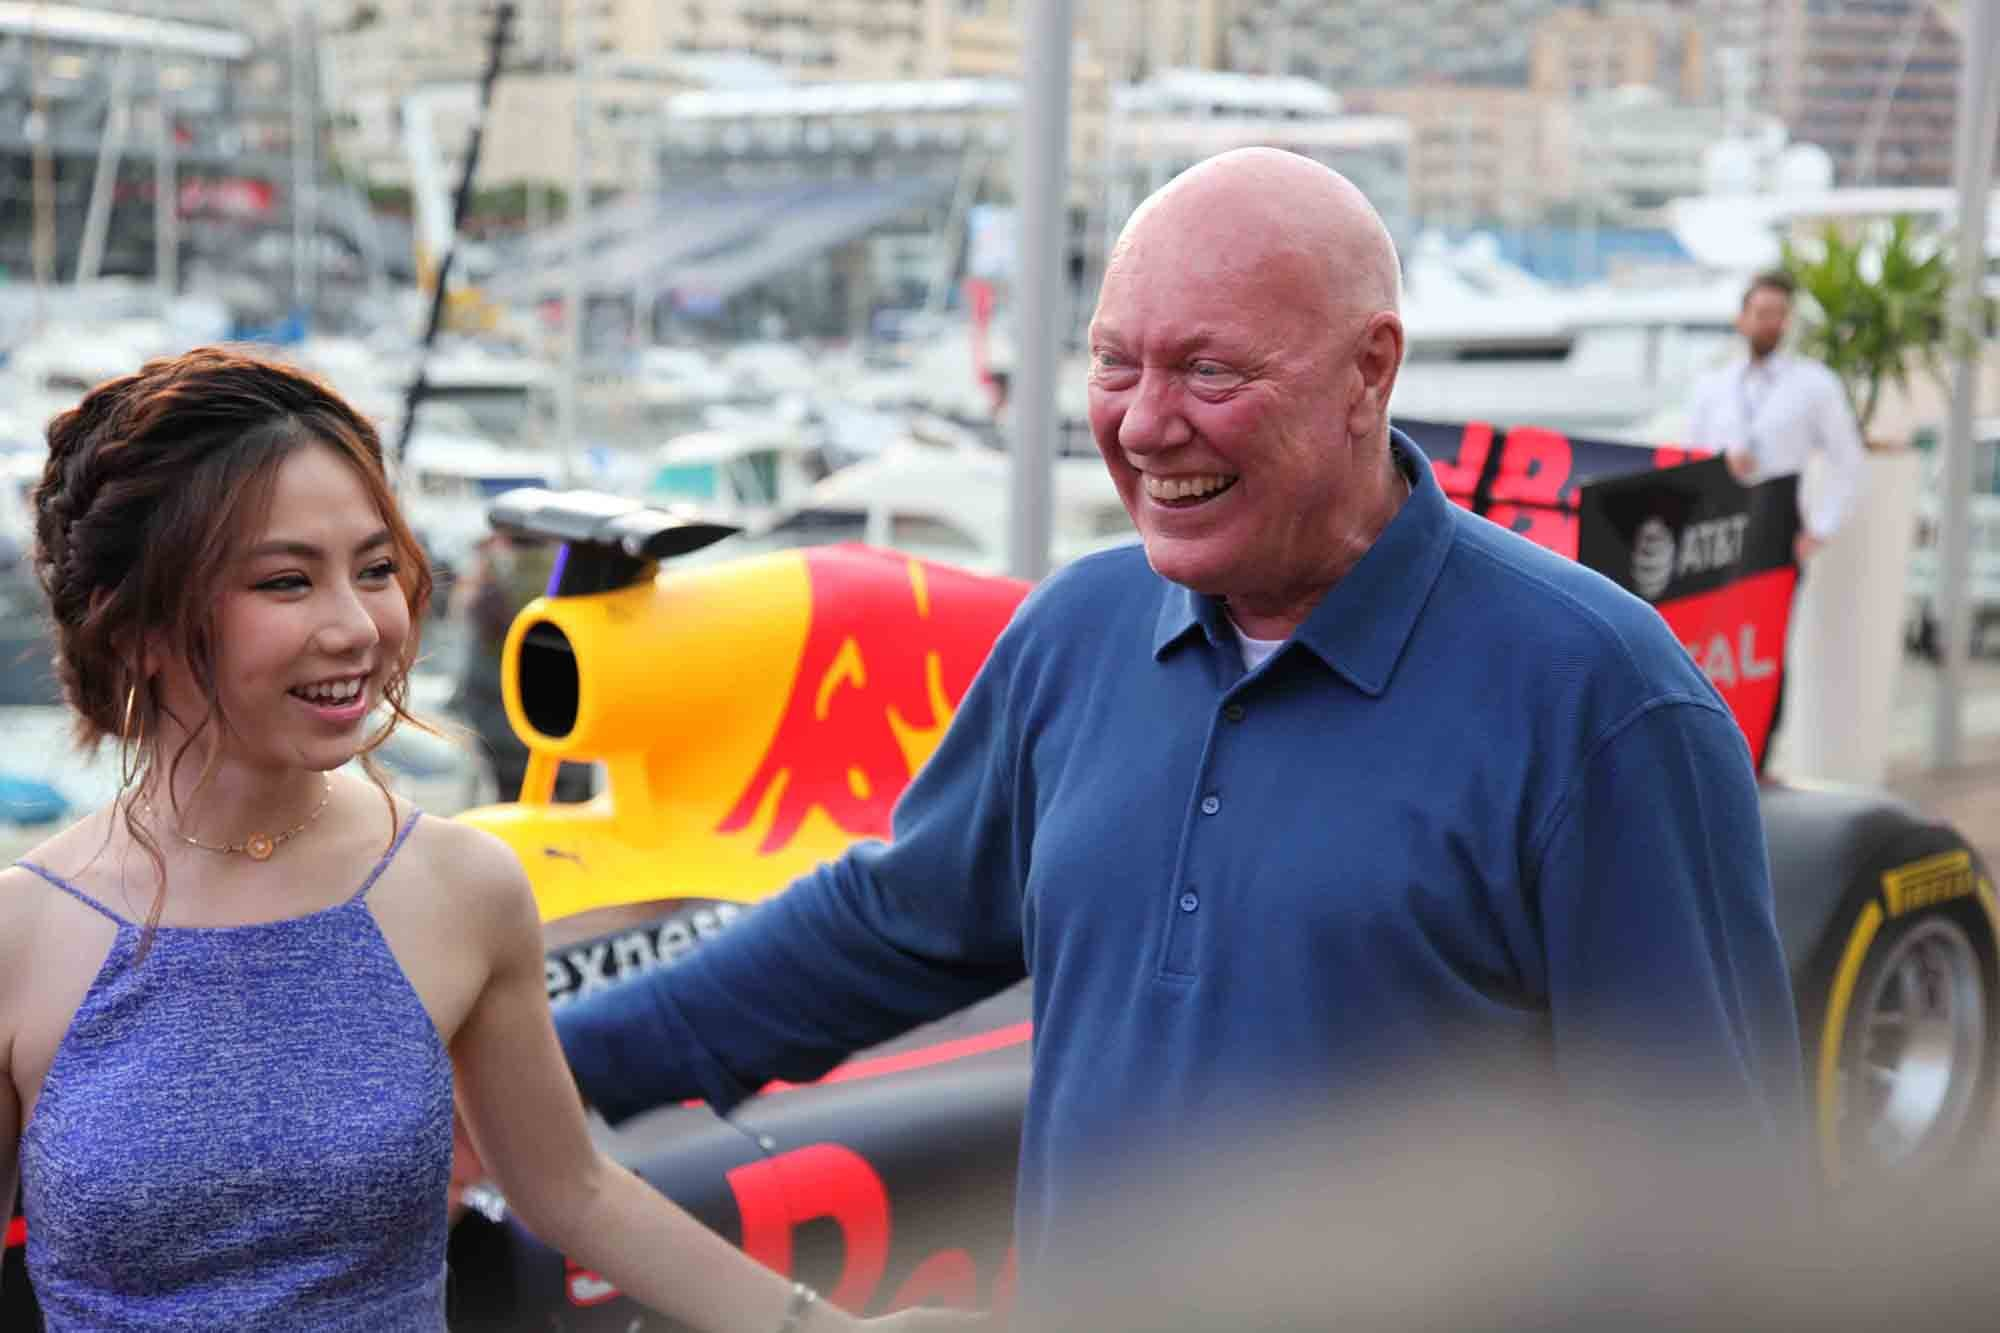 Photo Report: Behind The Scenes At The Monaco Grand Prix 2016 With TAG Heuer CEO Jean-Claude Biver Photo Report: Behind The Scenes At The Monaco Grand Prix 2016 With TAG Heuer CEO Jean-Claude Biver rr